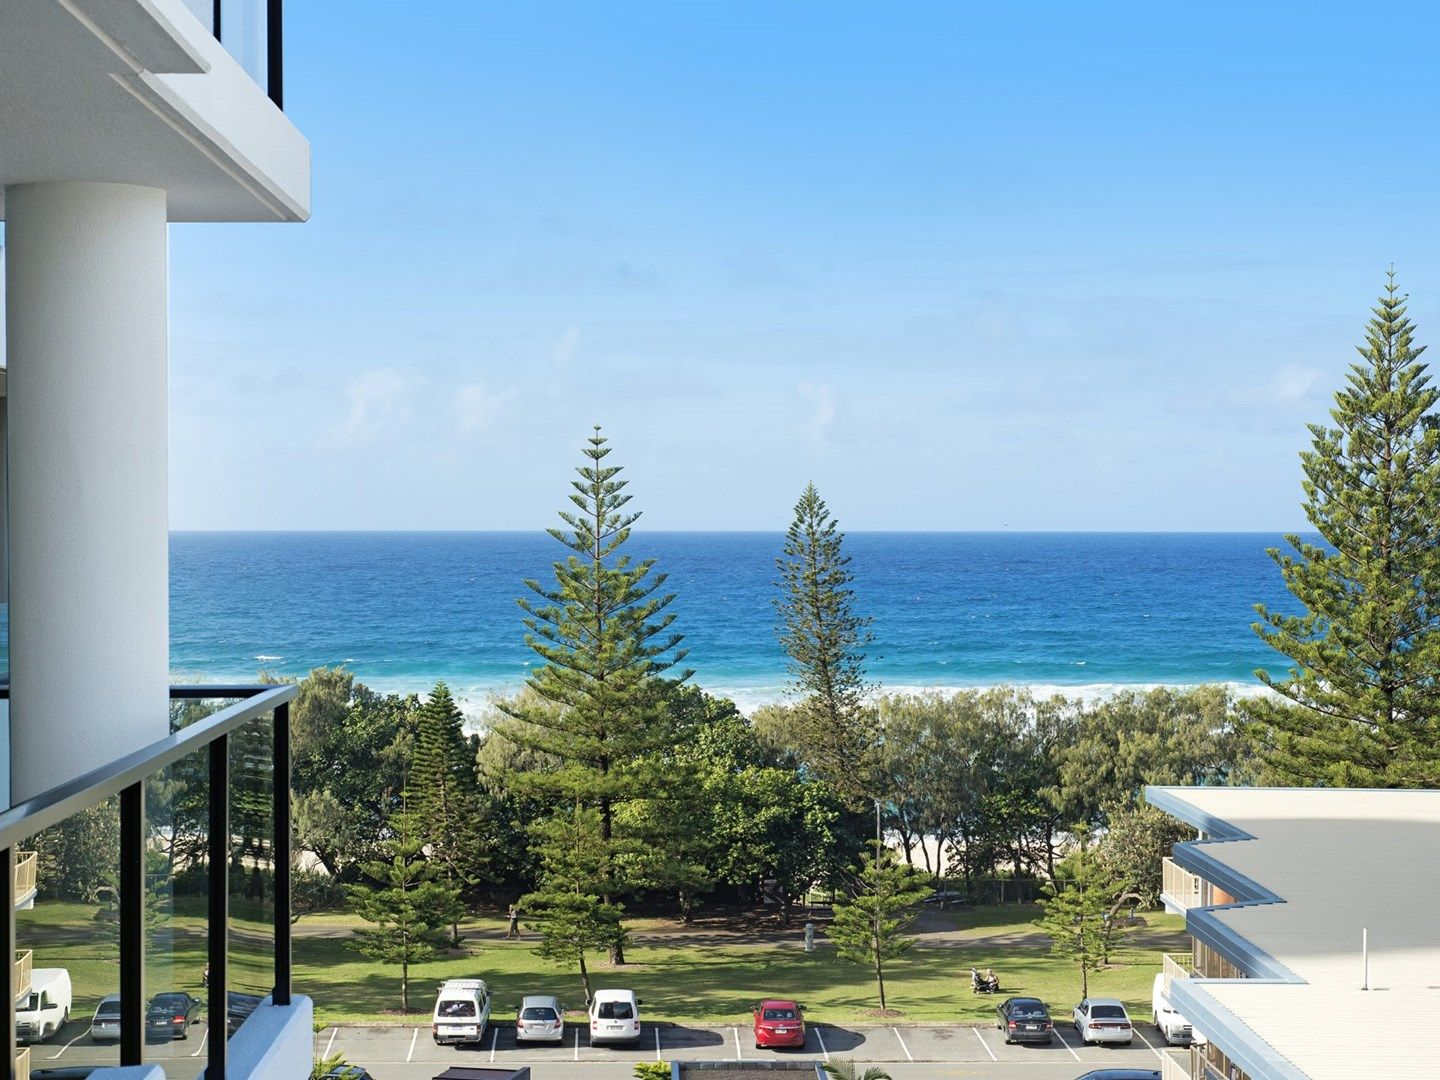 35/70-72 The Esplanade, Burleigh Heads QLD 4220, Image 0